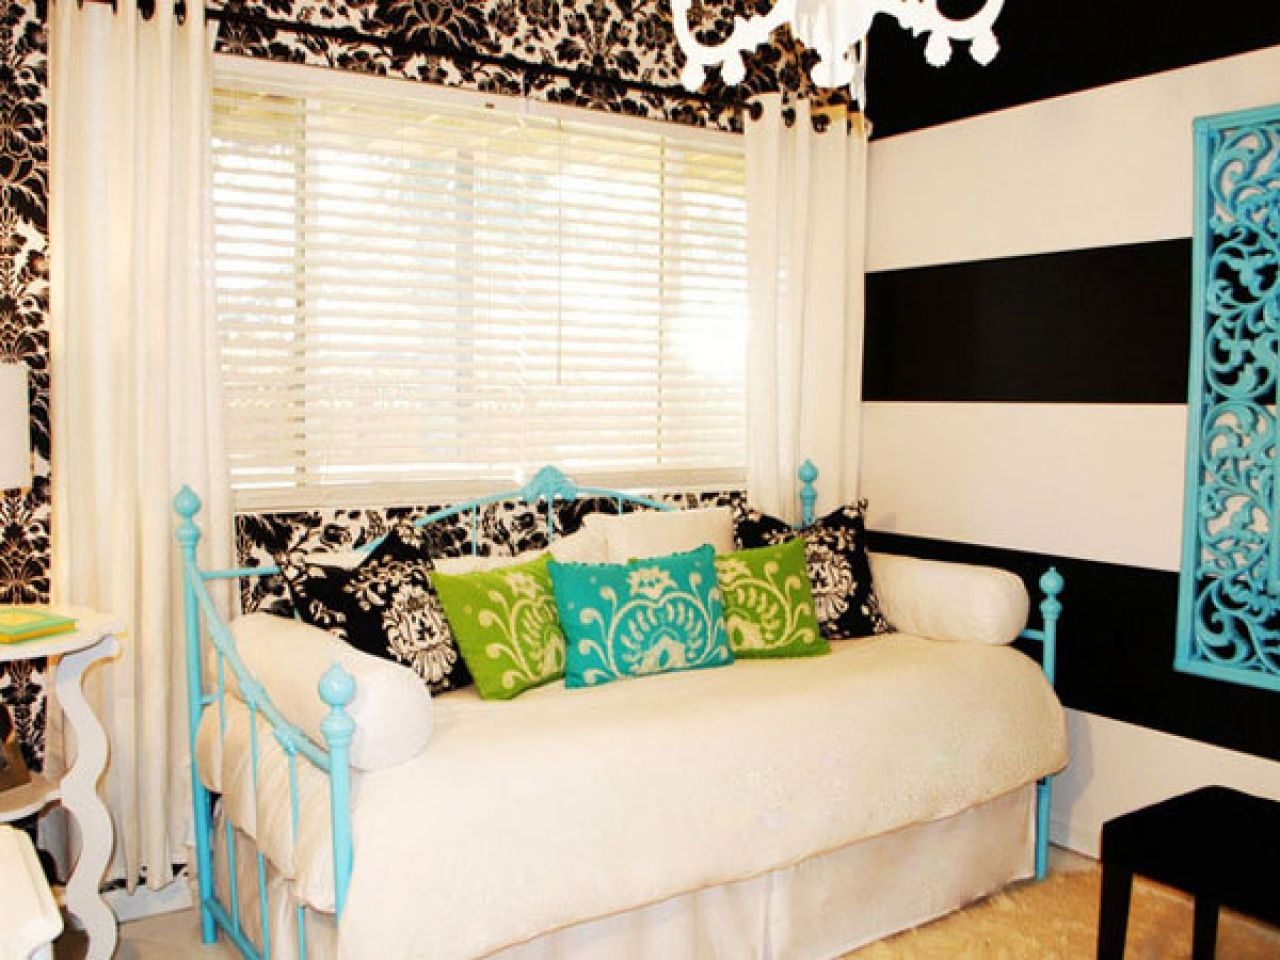 Bedroom paint designs black and white - Blue And White Bedroom For Teenage Girls Modern Decoration 17 On